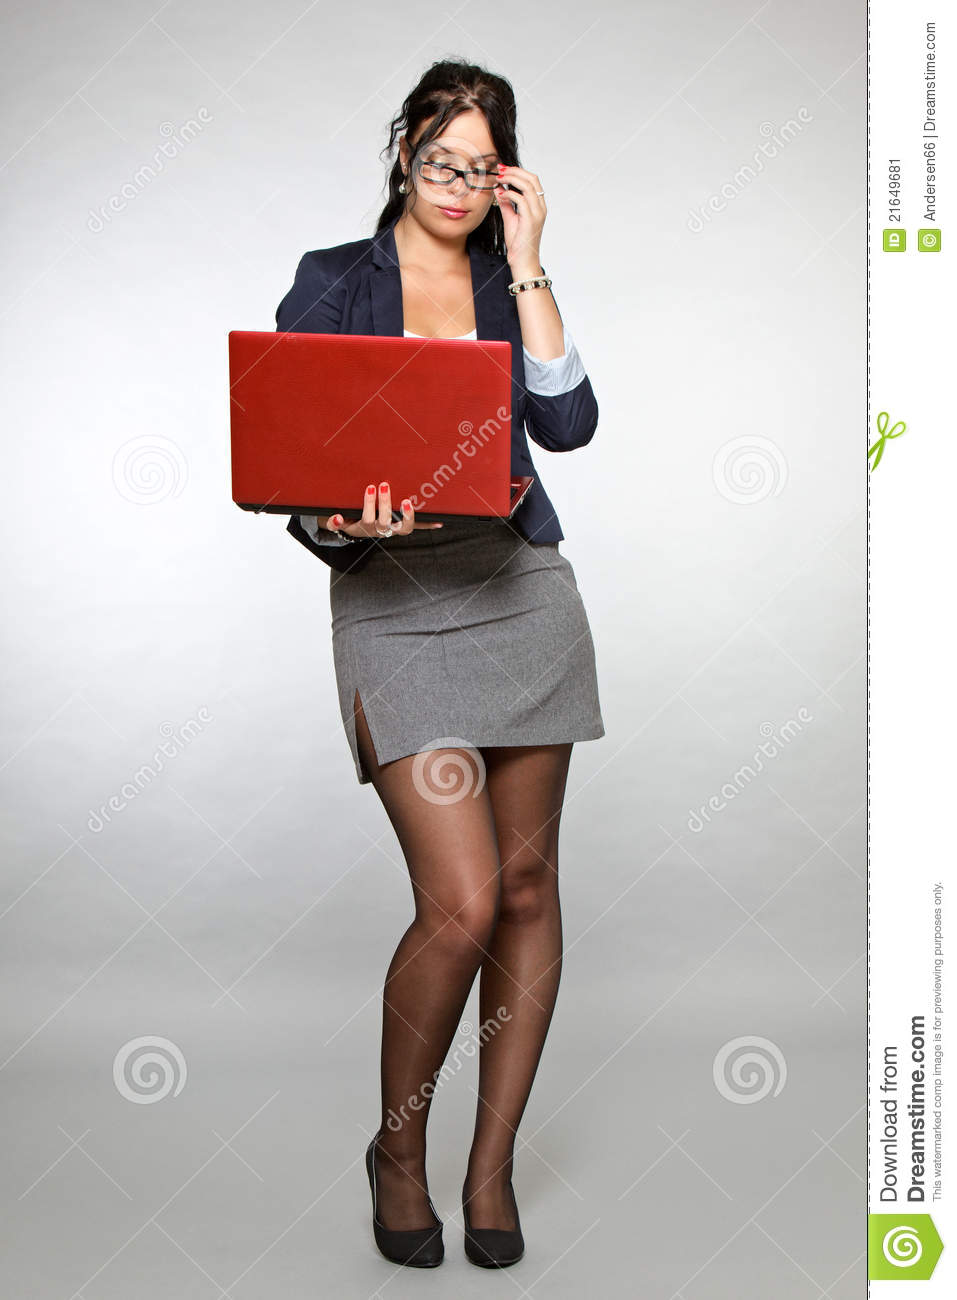 Secretary With Red Laptop Stock Image  Image 21649681